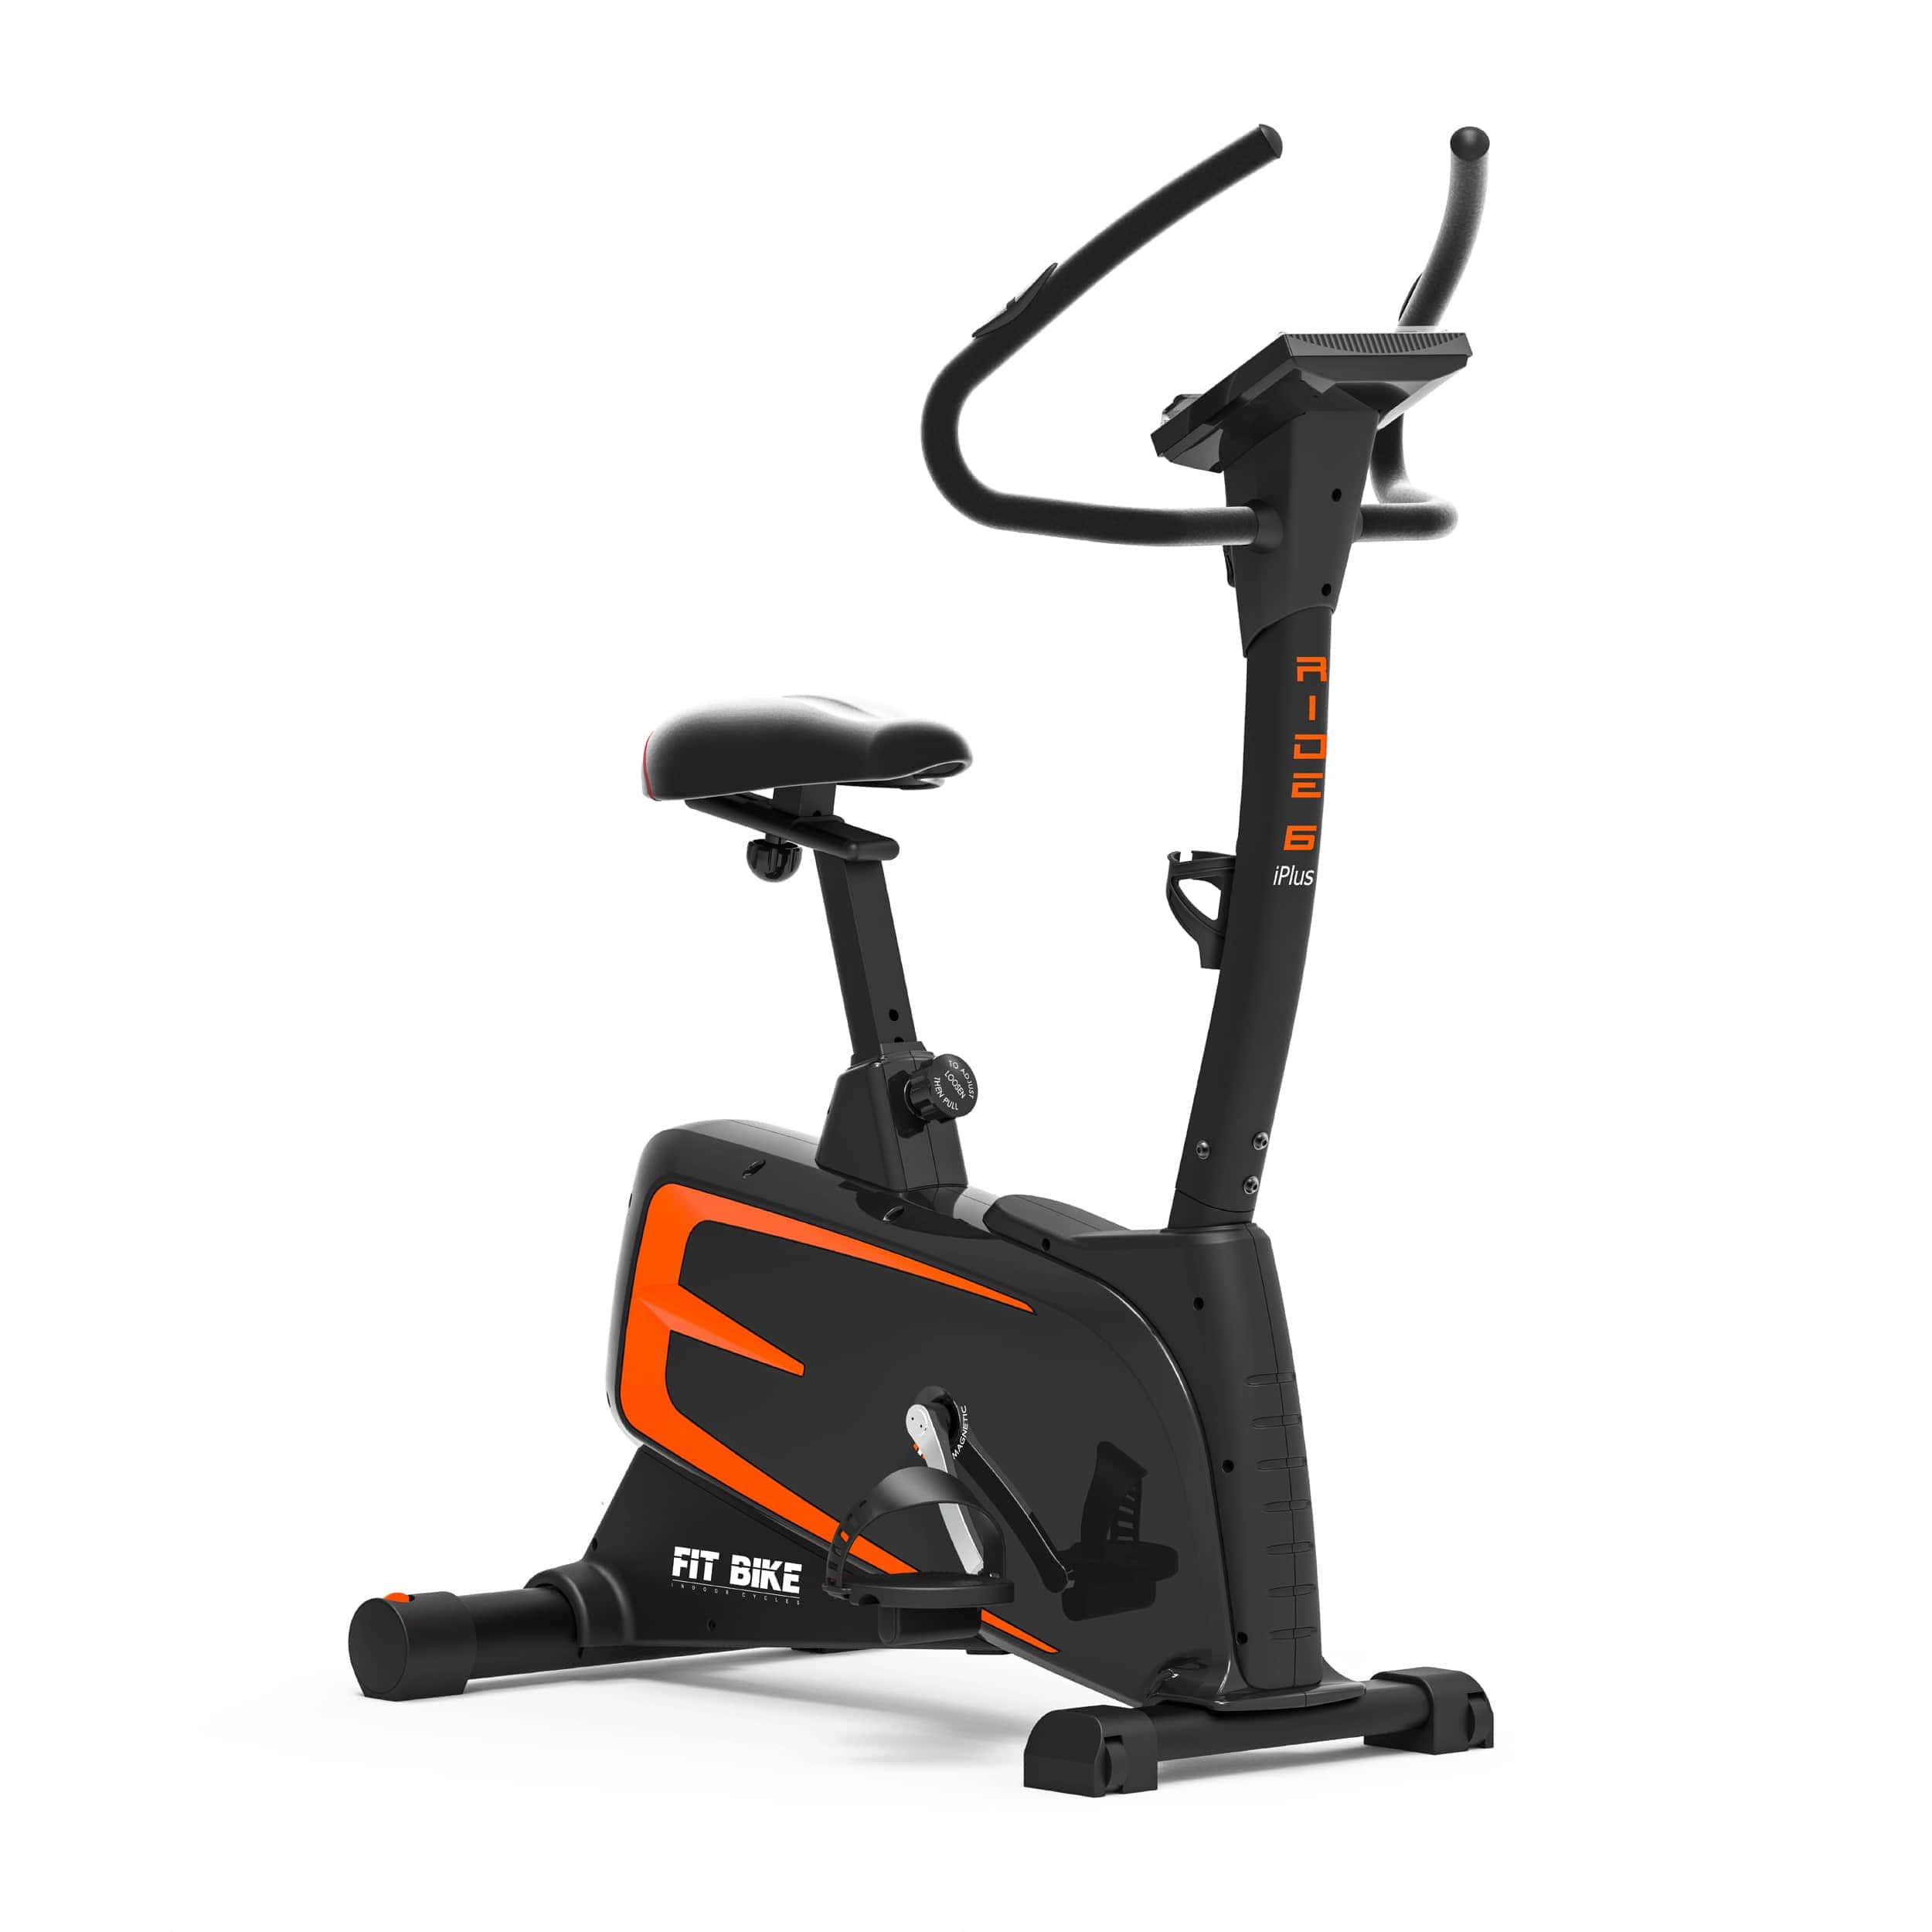 fit bike ride 6 hometrainer afbeelding 2